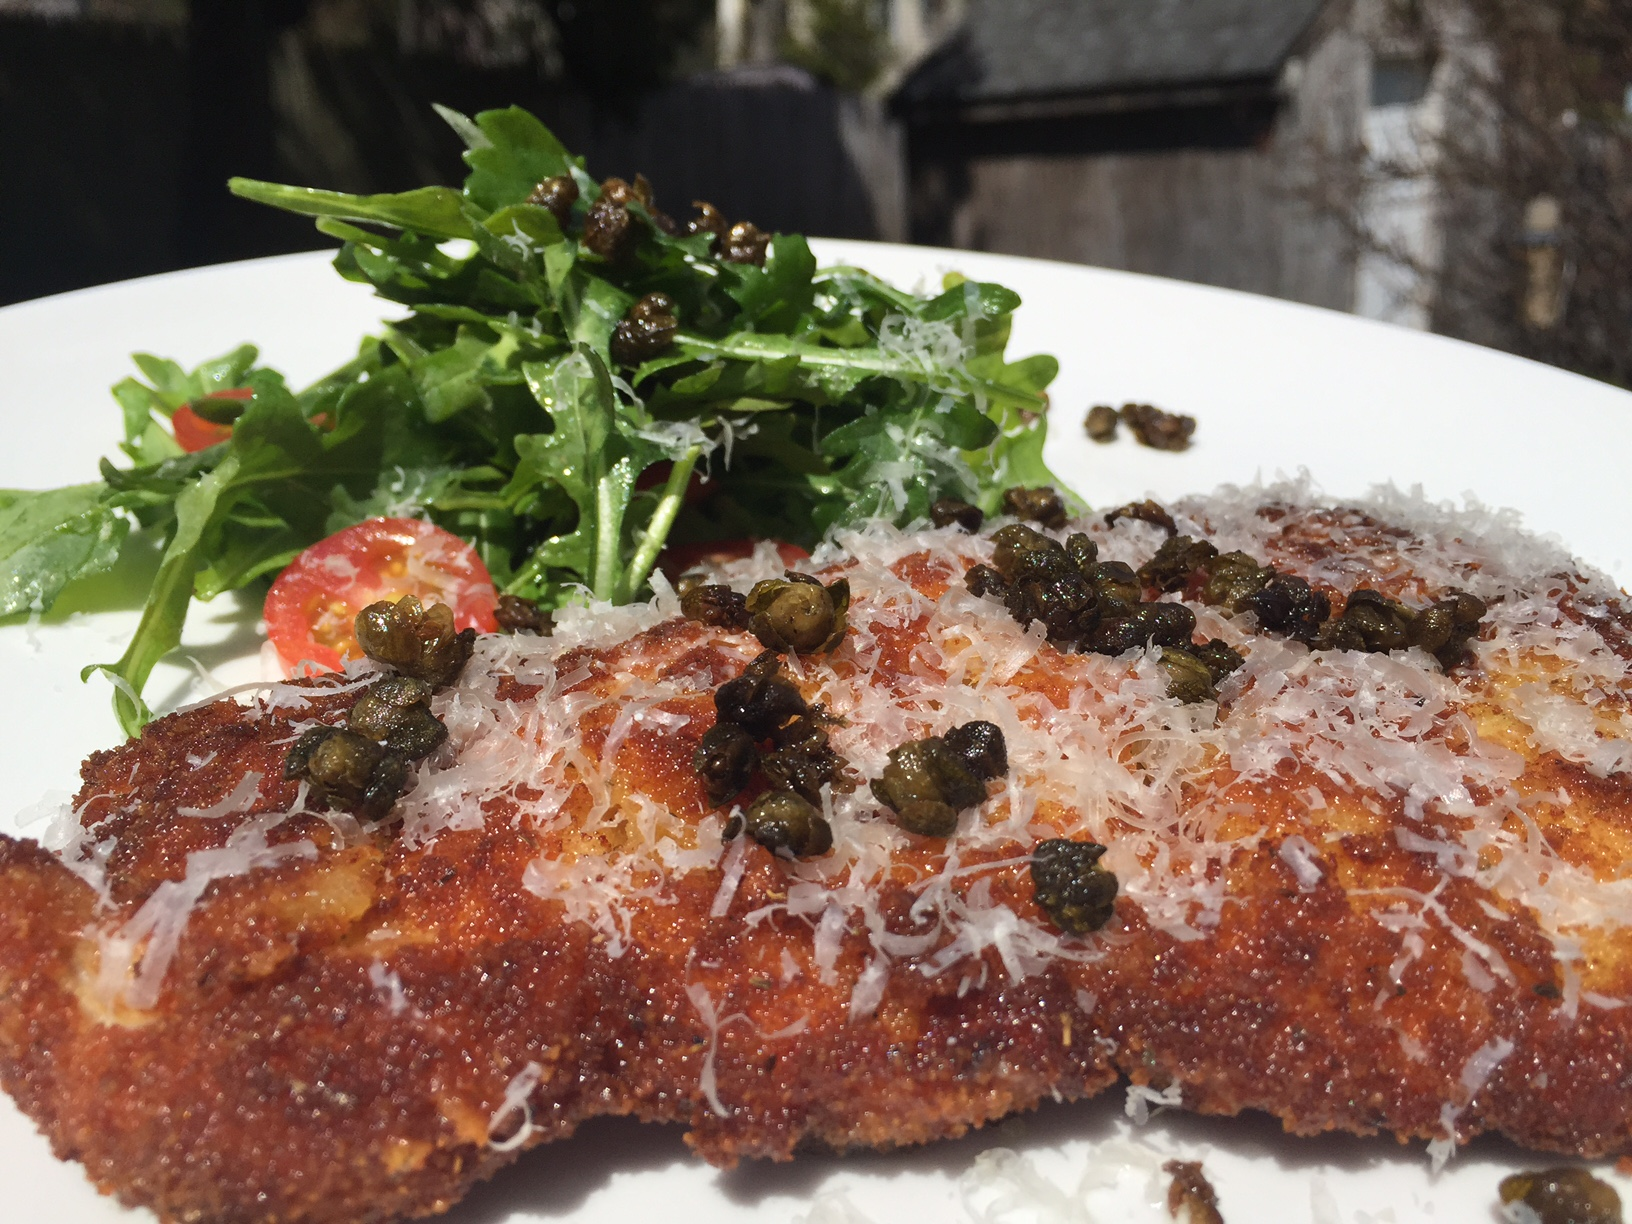 Parmesan Chicken Paillard with Fried Capers